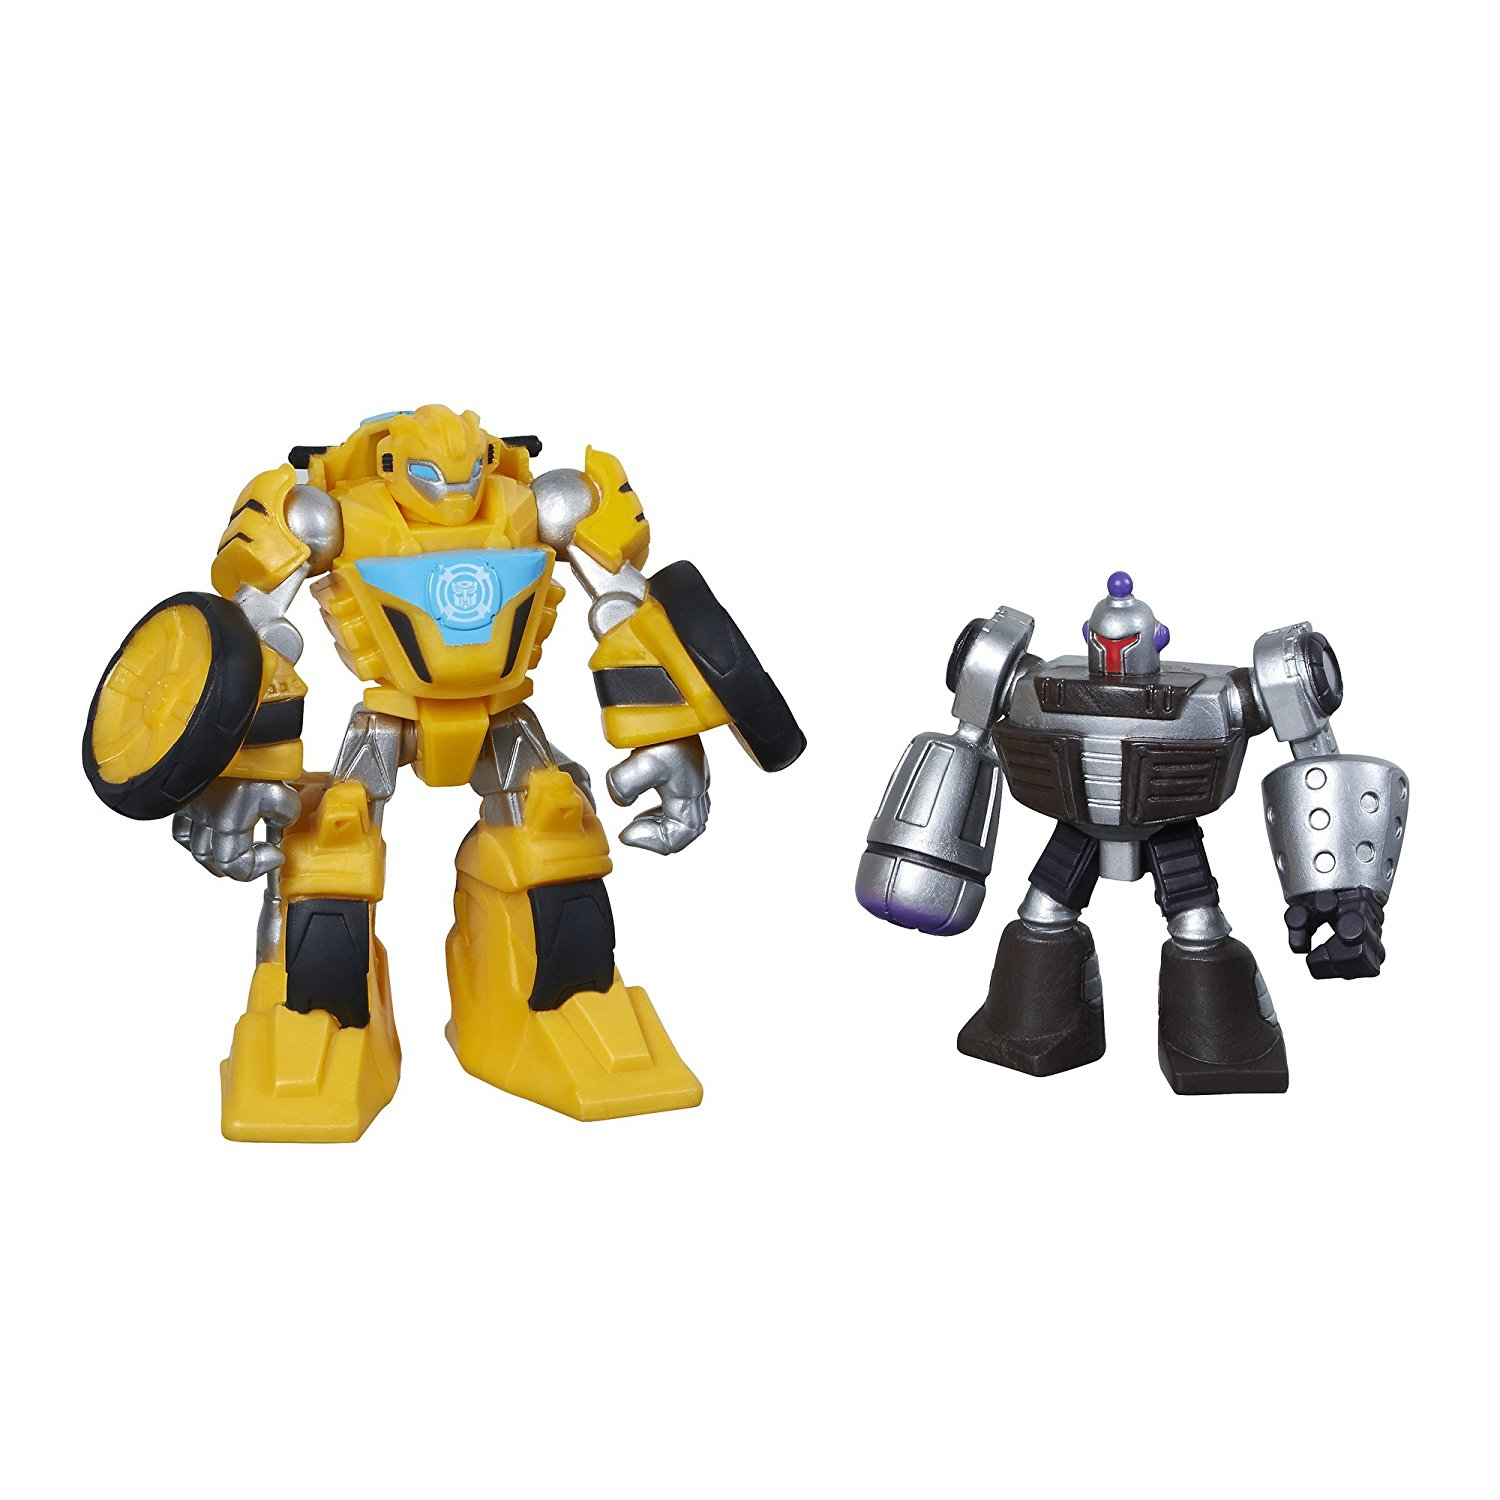 Heroes Transformers Rescue Bots Bumblebee and Morbot Figure PackProduct does not convert... by